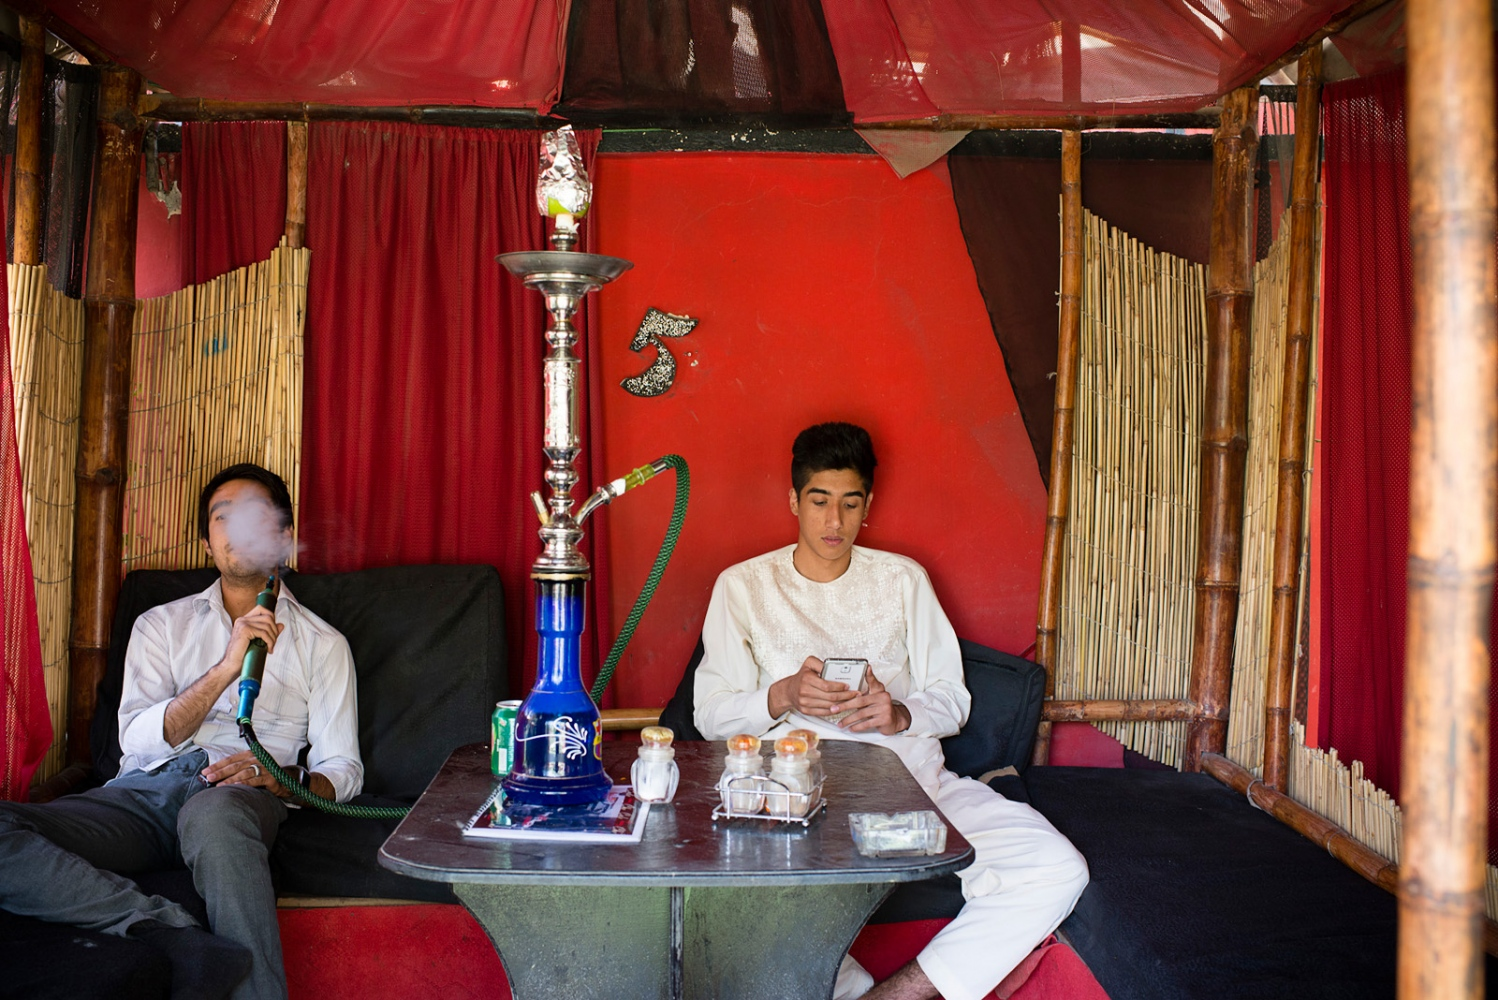 KABUL, AFGHANISTAN | 2014-08-10 | Young Afghan men, all in their early 20s, socialize and smoke hooka at Cafe Che, in Western Kabul. Cafe Che is one of the fewer cafes that have become very popular among young people in mixed groups as a meeting place.